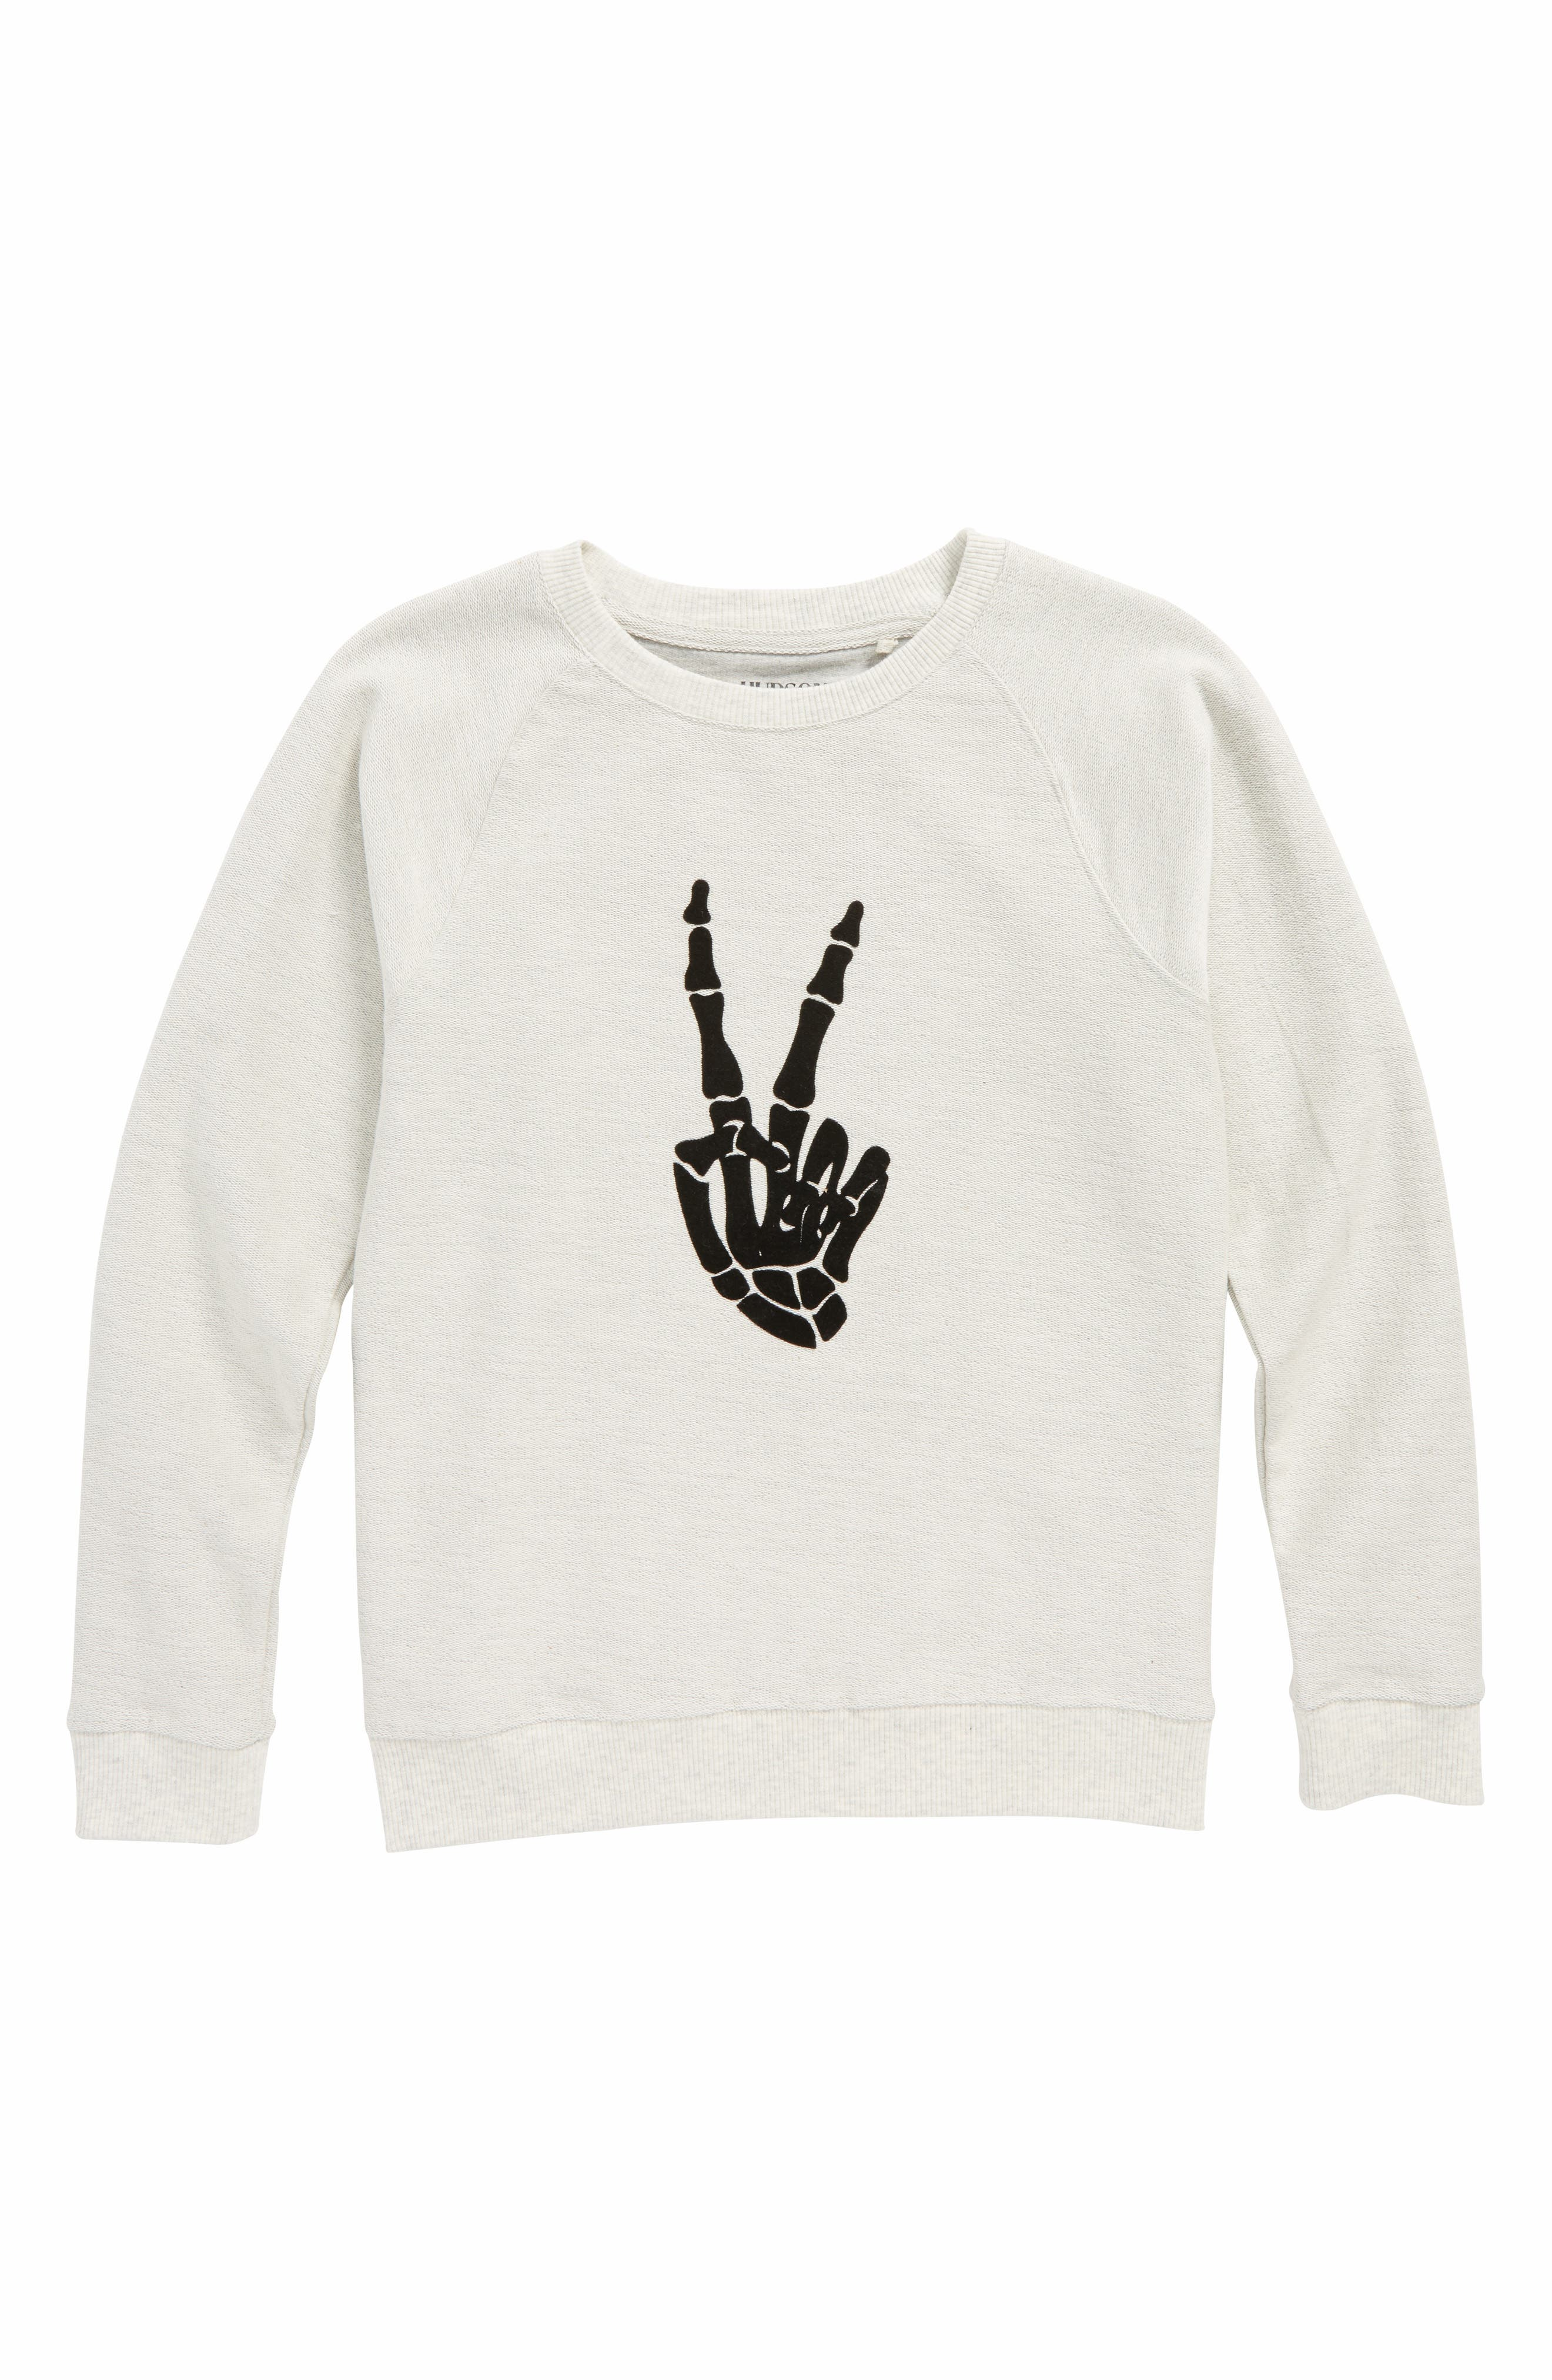 Vibes Graphic Sweatshirt,                         Main,                         color,